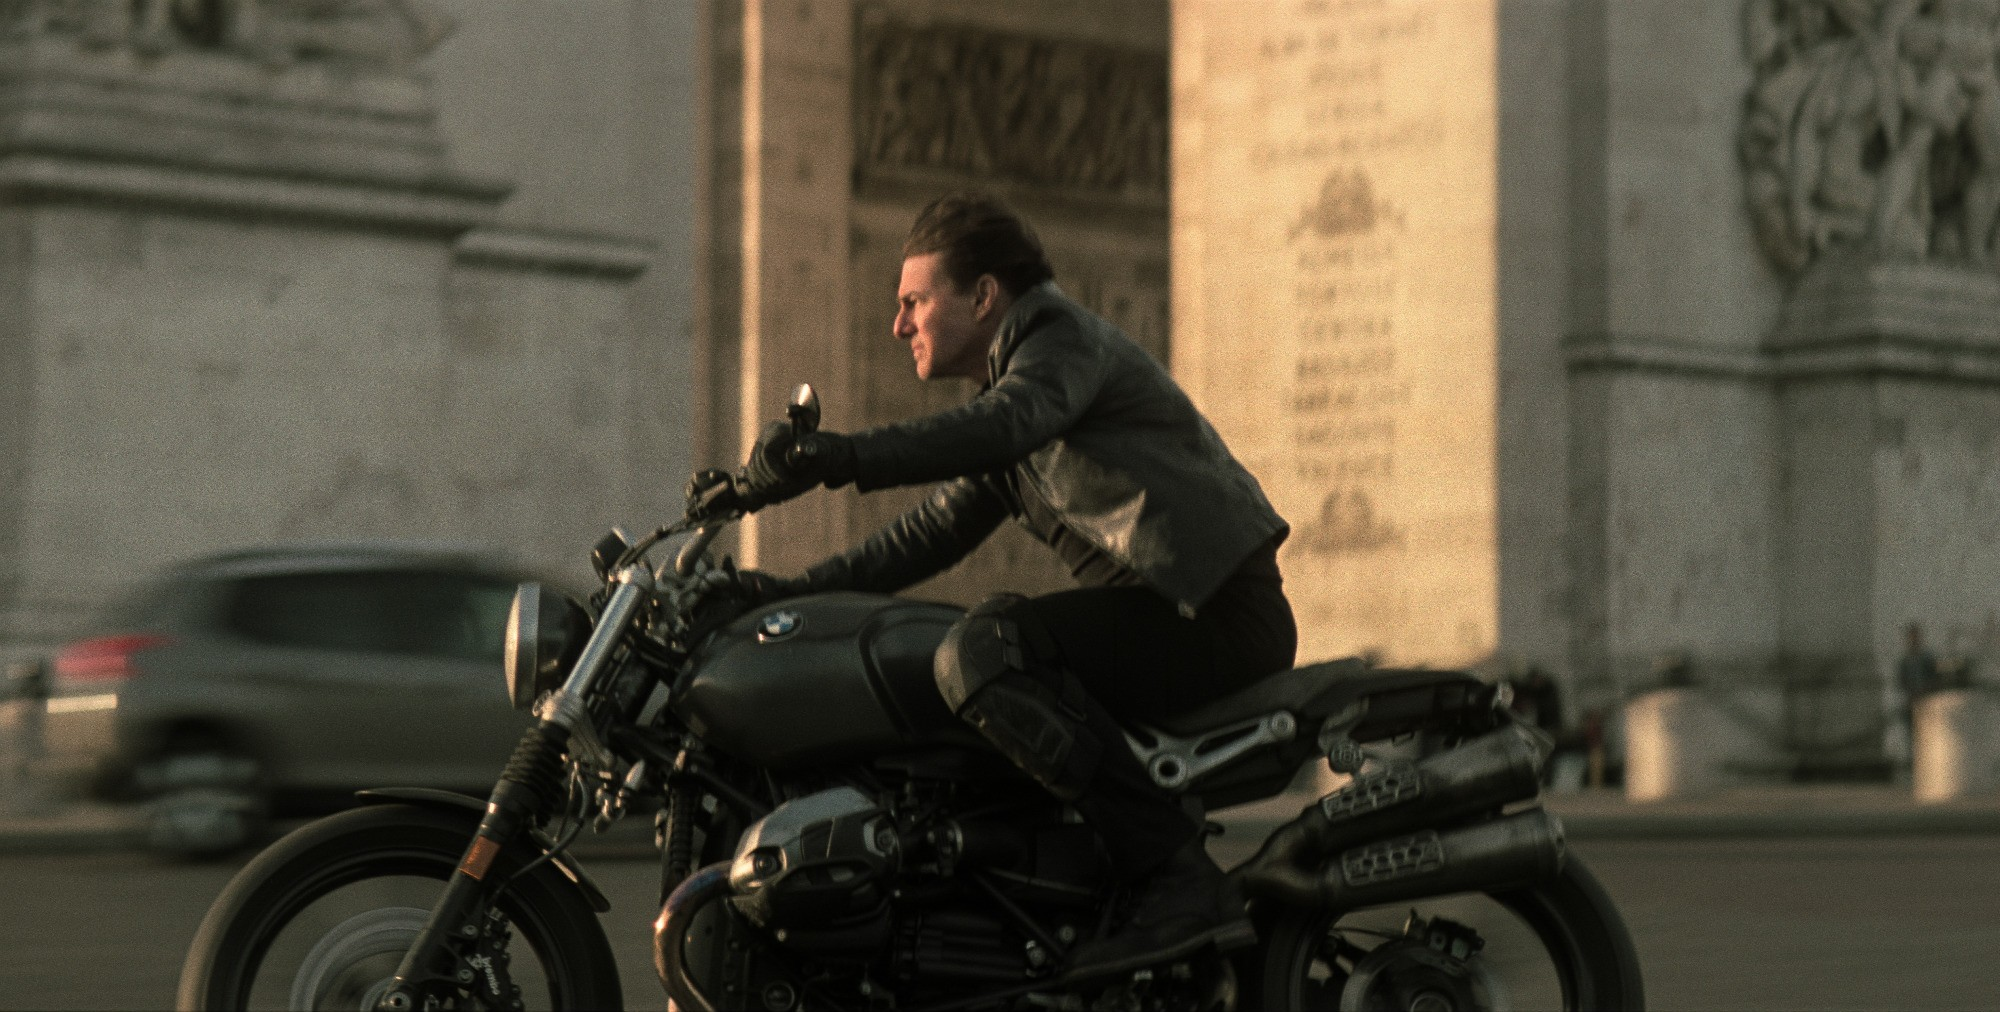 mission_impossible_fallout_tom_cruise_courtesy_paramount_pictures.jpg